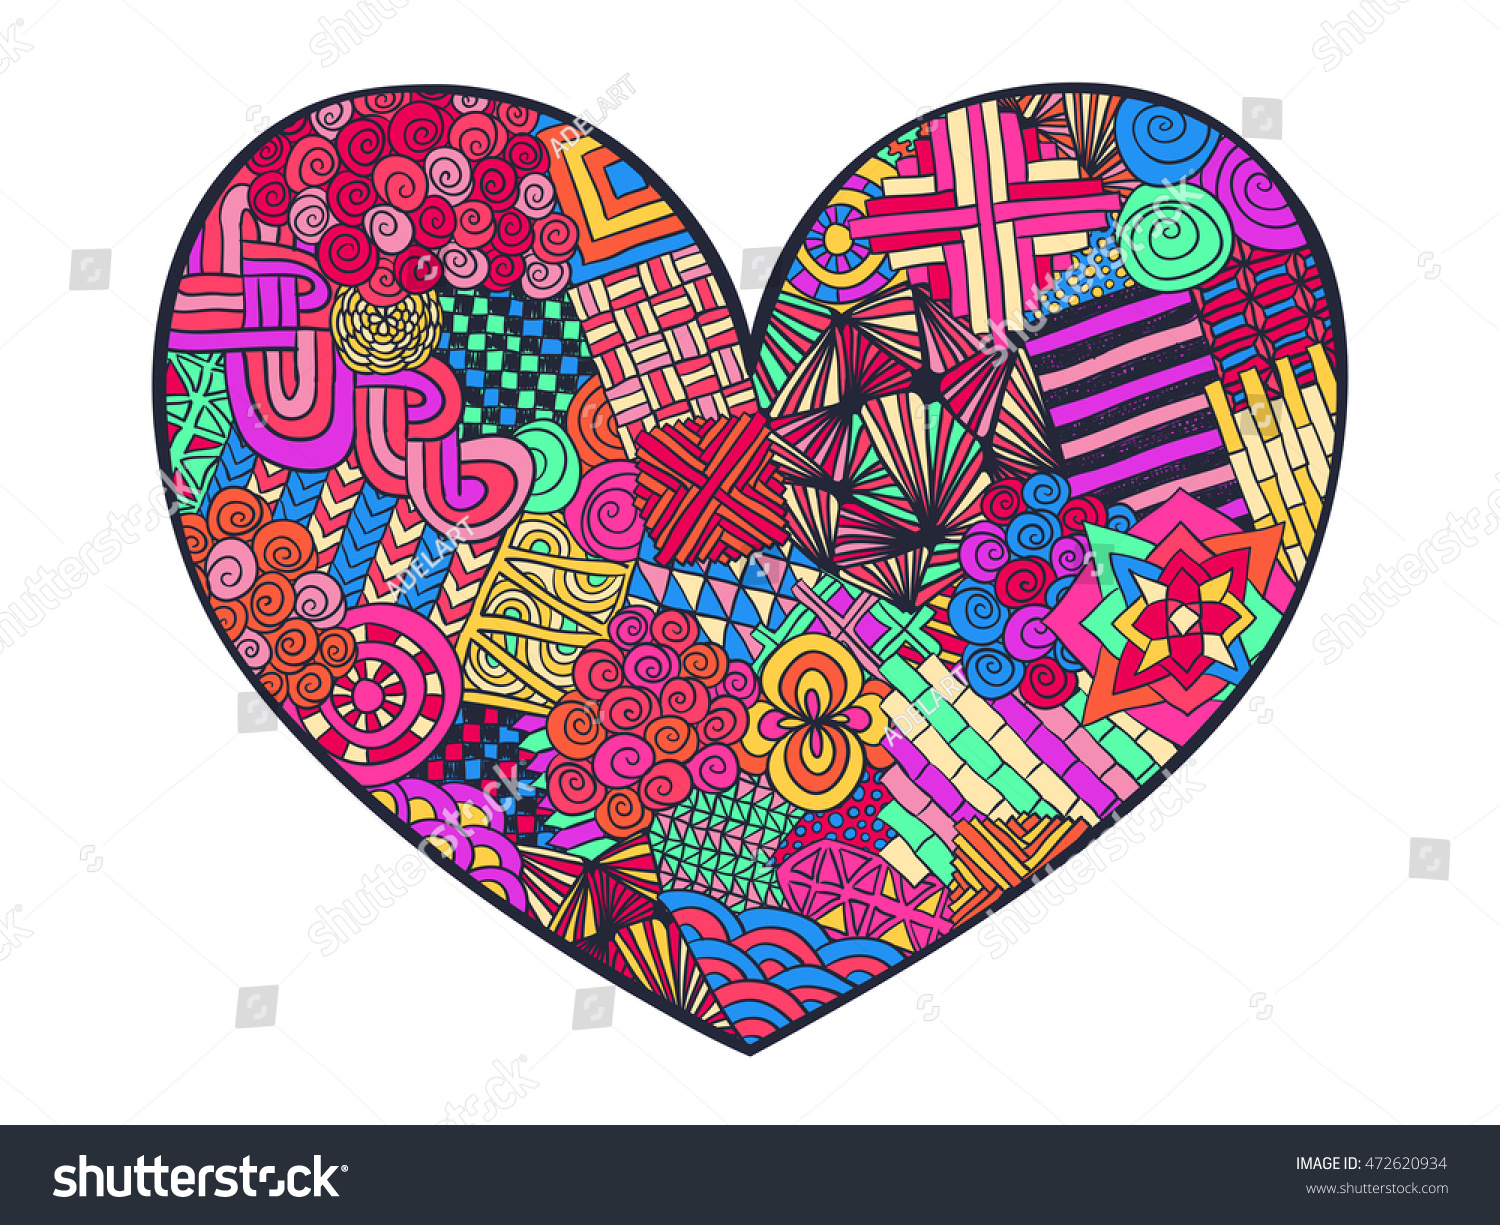 Heart Doodle Coloring Page Zentangle Abstract Stock Vector (2018 ...